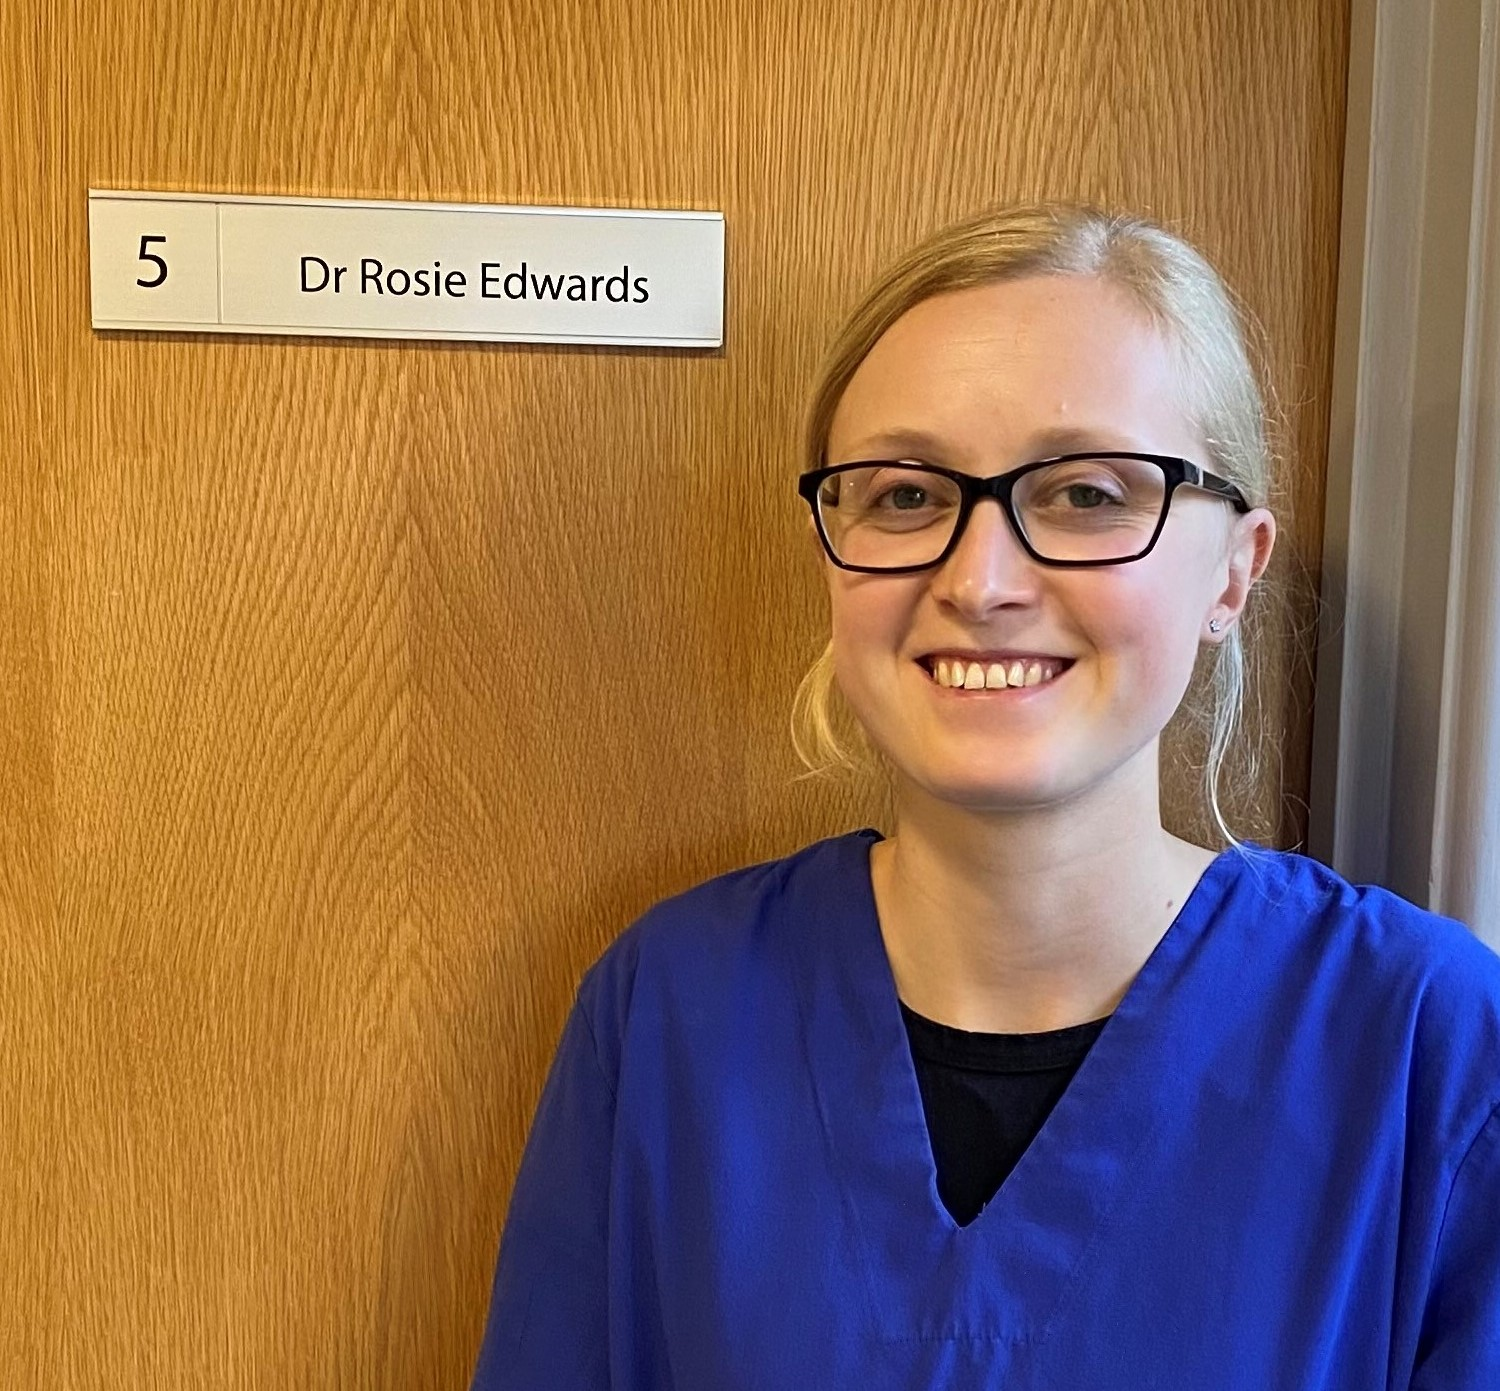 Dr Rosie Edwards